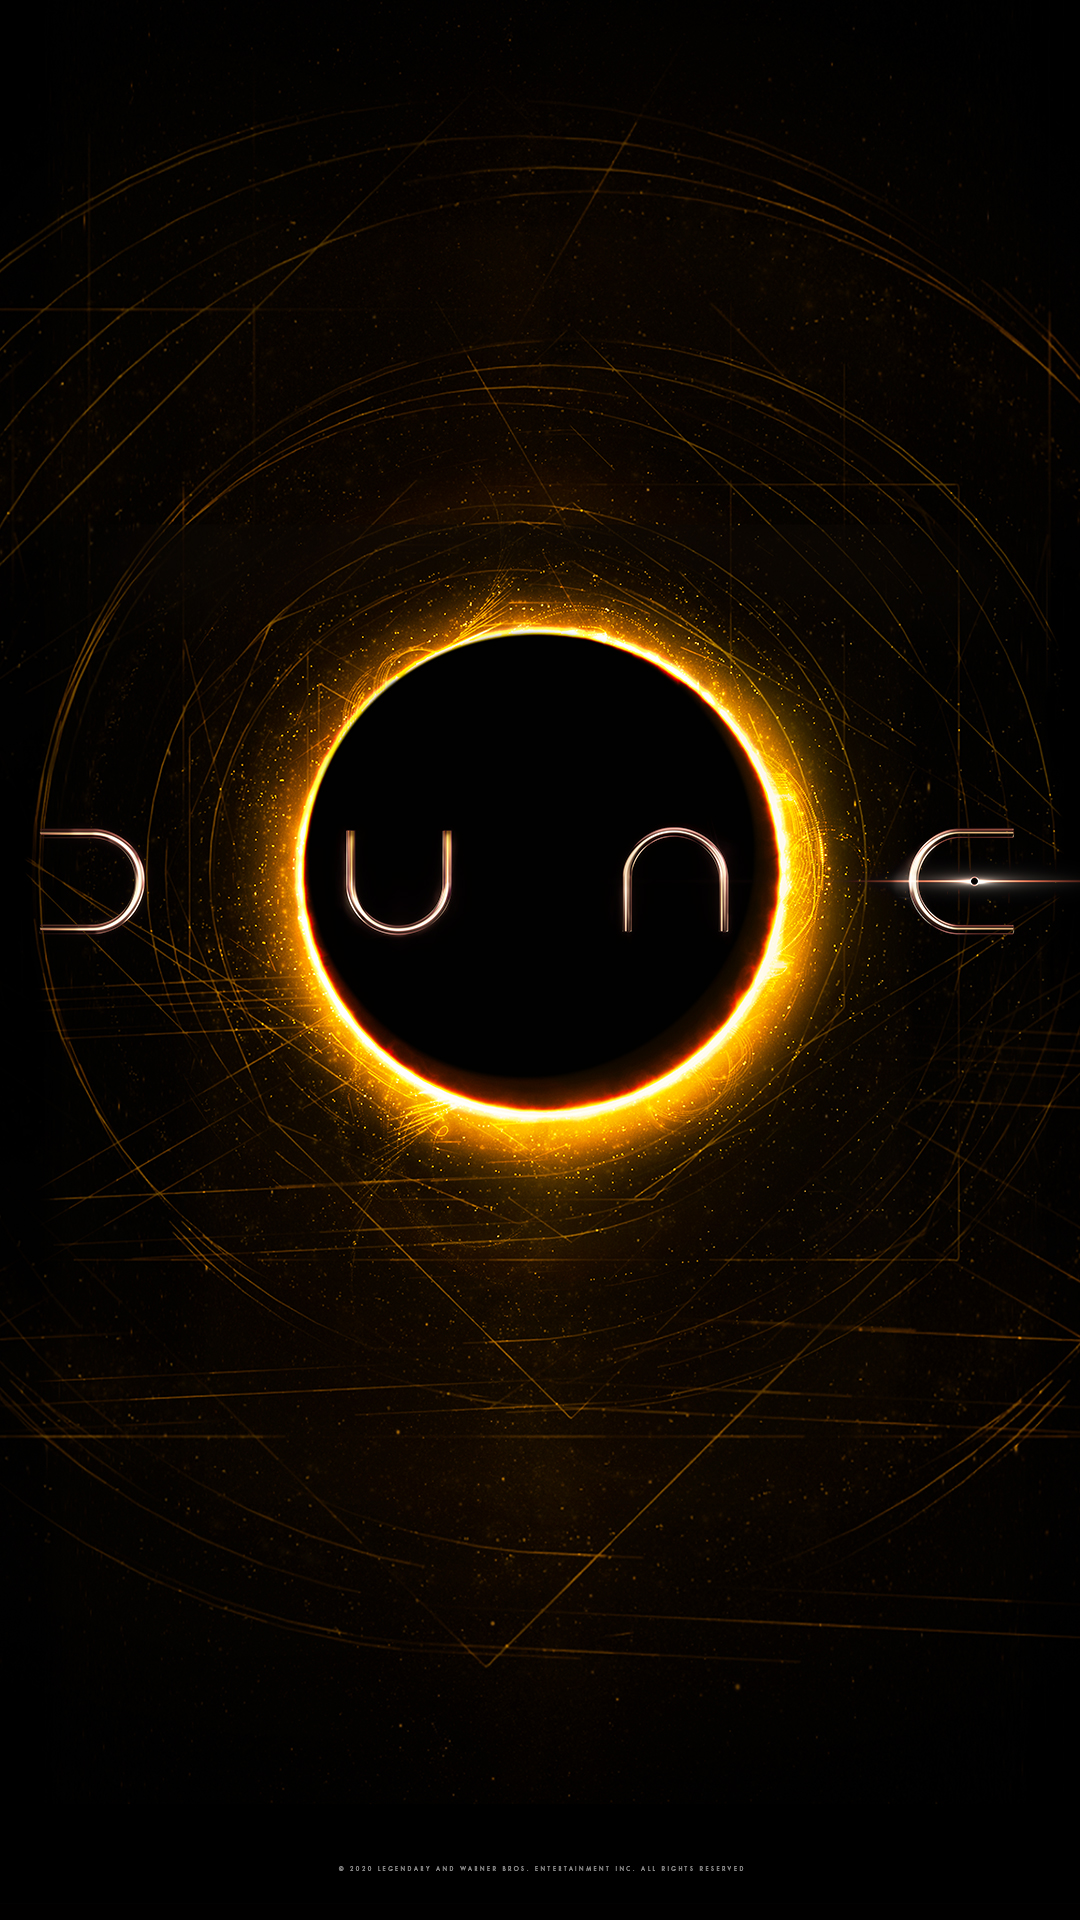 Dune movie image of the title and a lunar eclipse underneath from IMDb